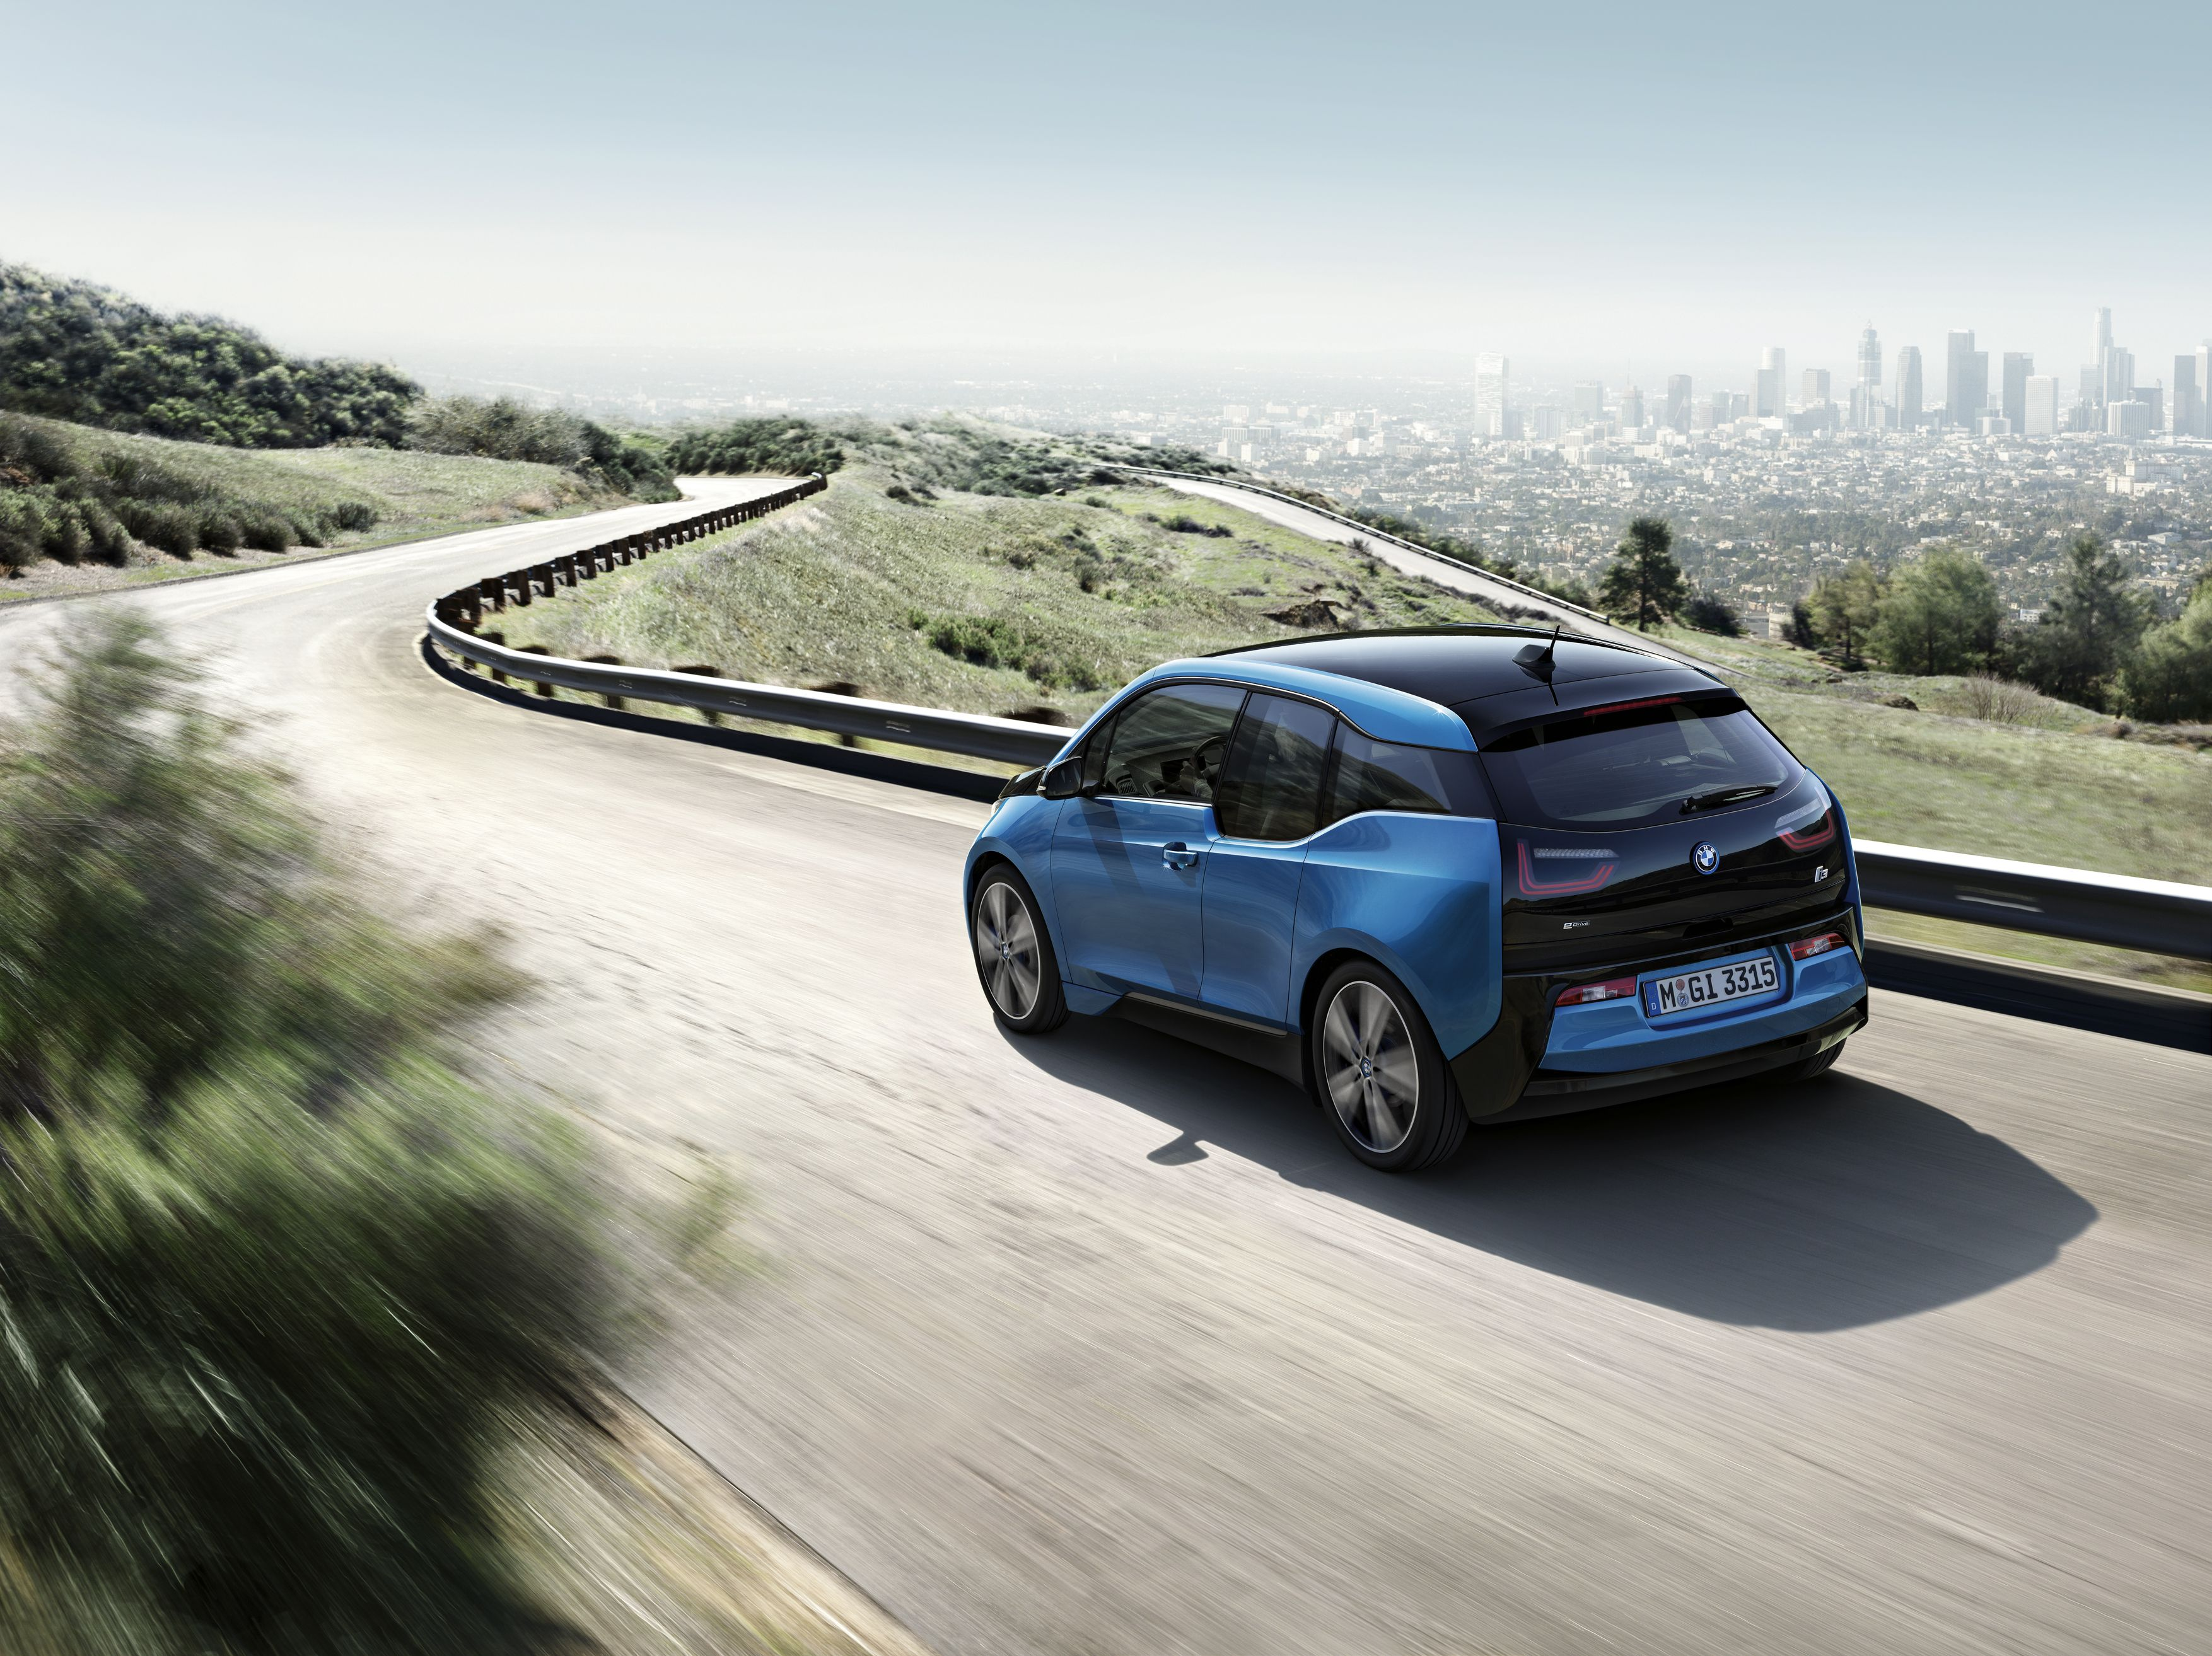 auto electric during viable production in file us reuters mass article t plug says the is d r i bmw charger for car pictured a electrification april not m results jason until w lee photo beijing china